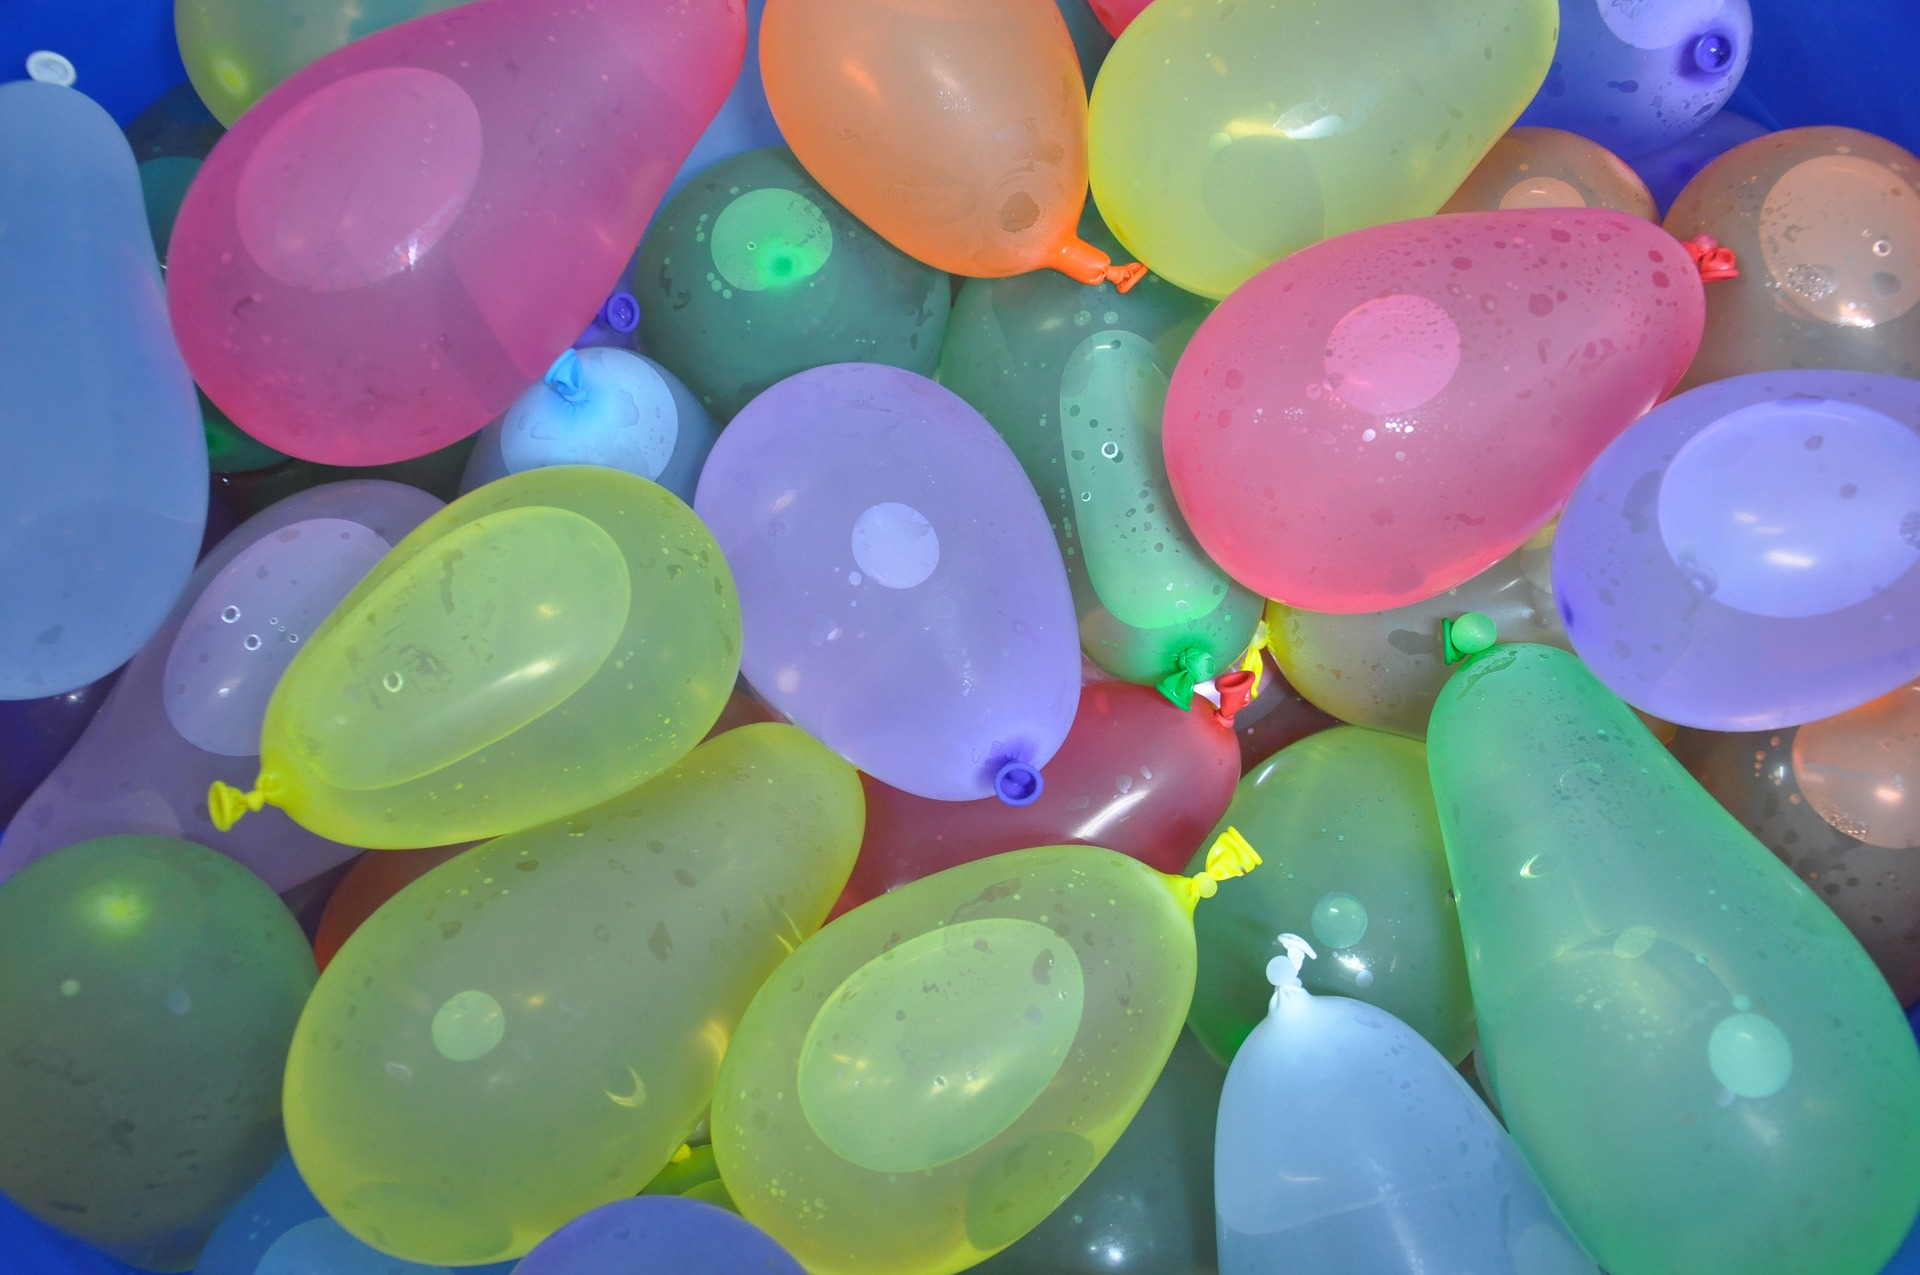 Variety of water balloon colors